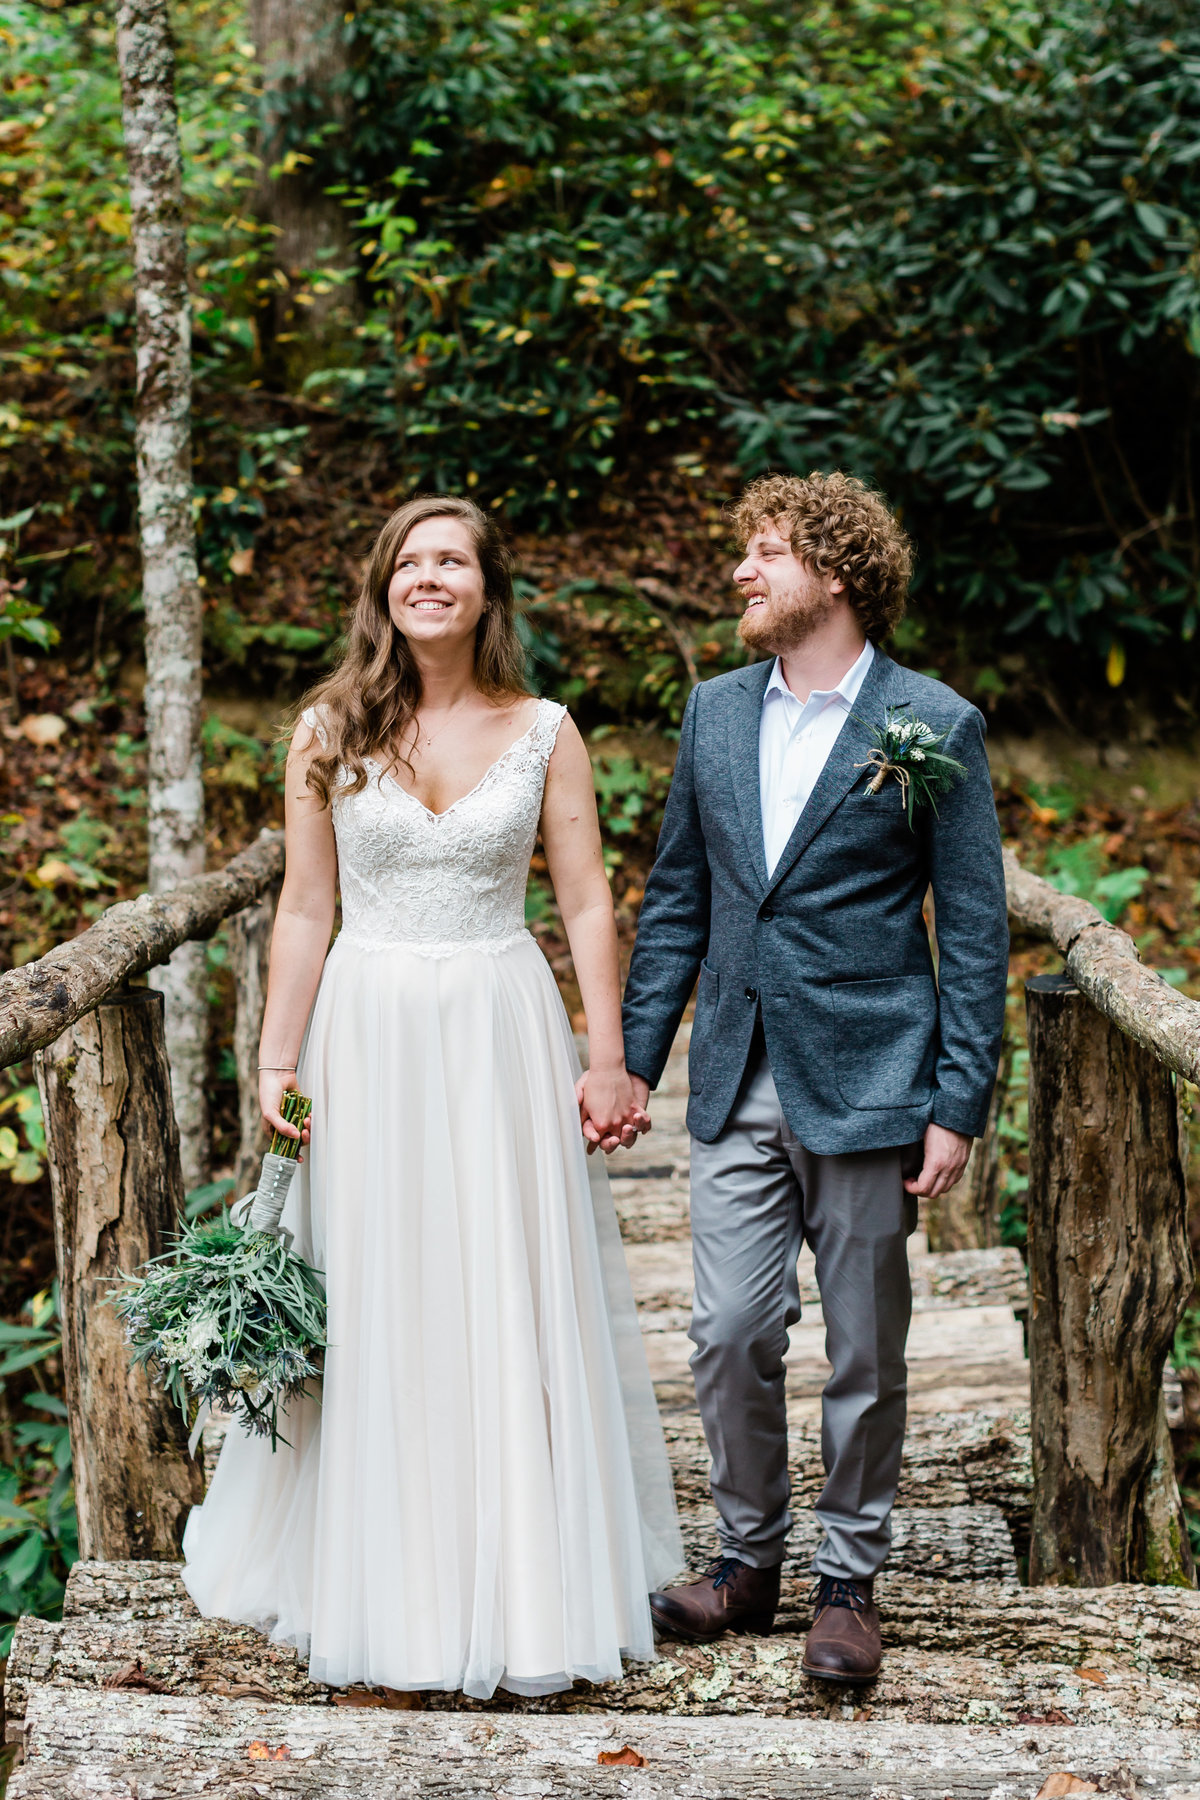 Danielle-Defayette-Photography-Mountain-Laurel-Farm-Wedding-Virginia-155